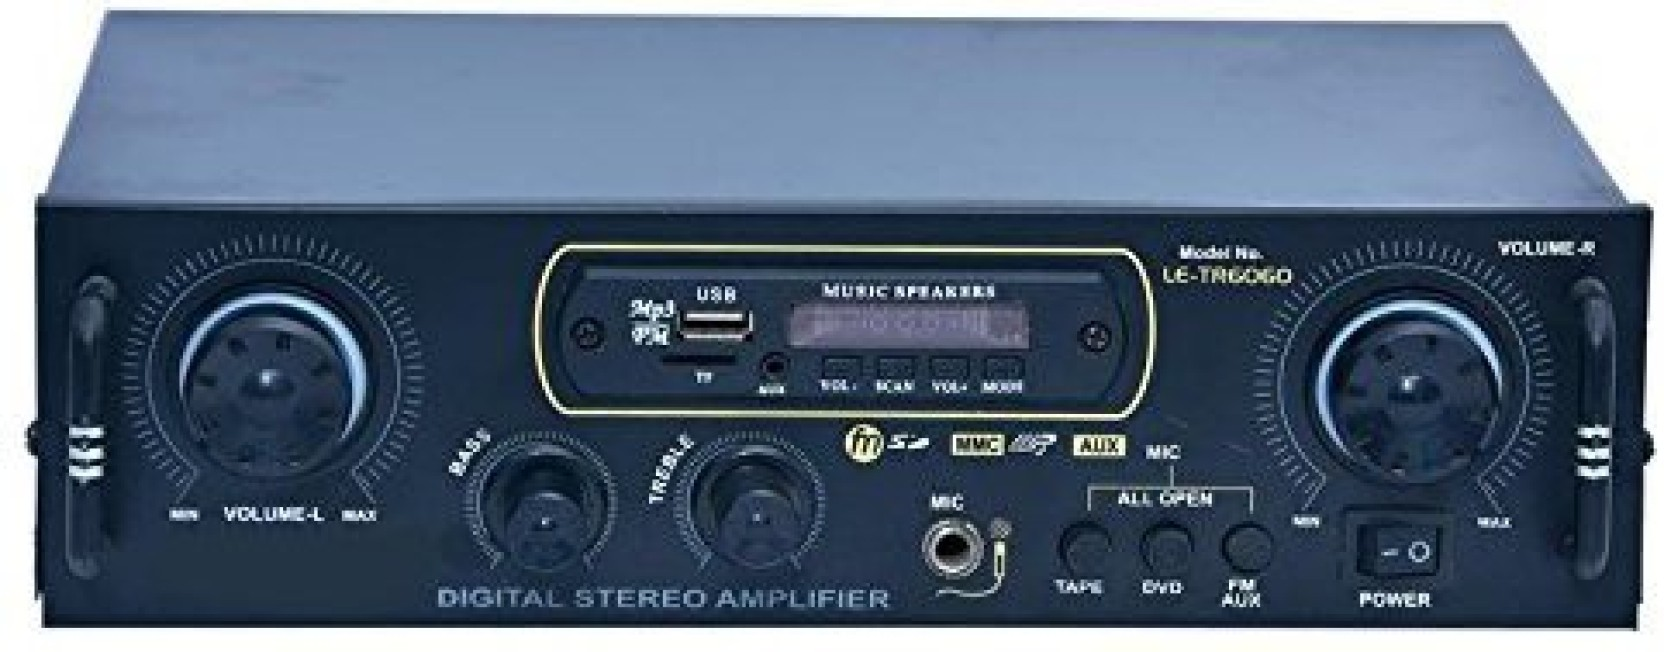 Buy Barry John Amplifier With Usb Aux Mmc Fm Power Transistor Best Mp3 And Radio Pink Compare